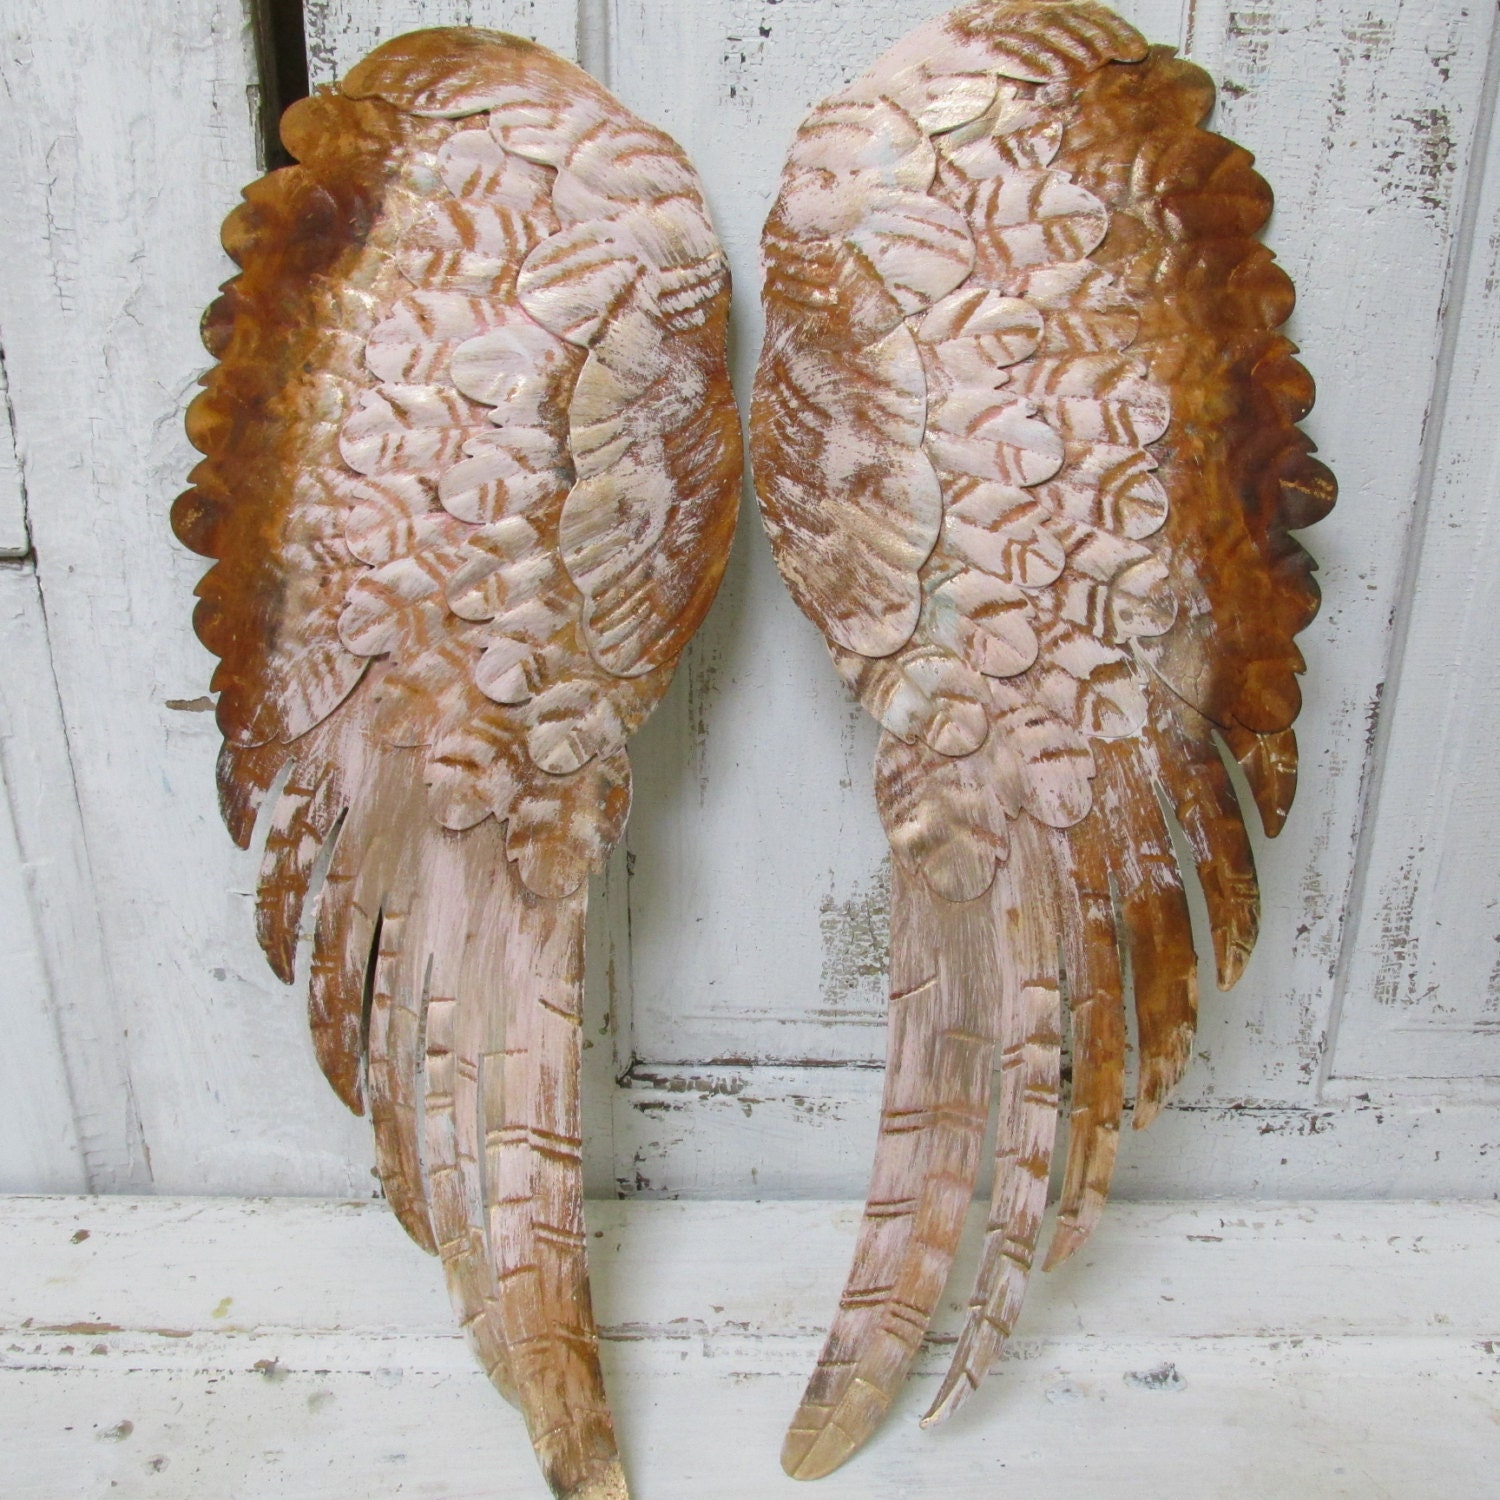 Distressed Metal Wall Decor : Large metal wings wall decor rusty distressed shabby chic pink